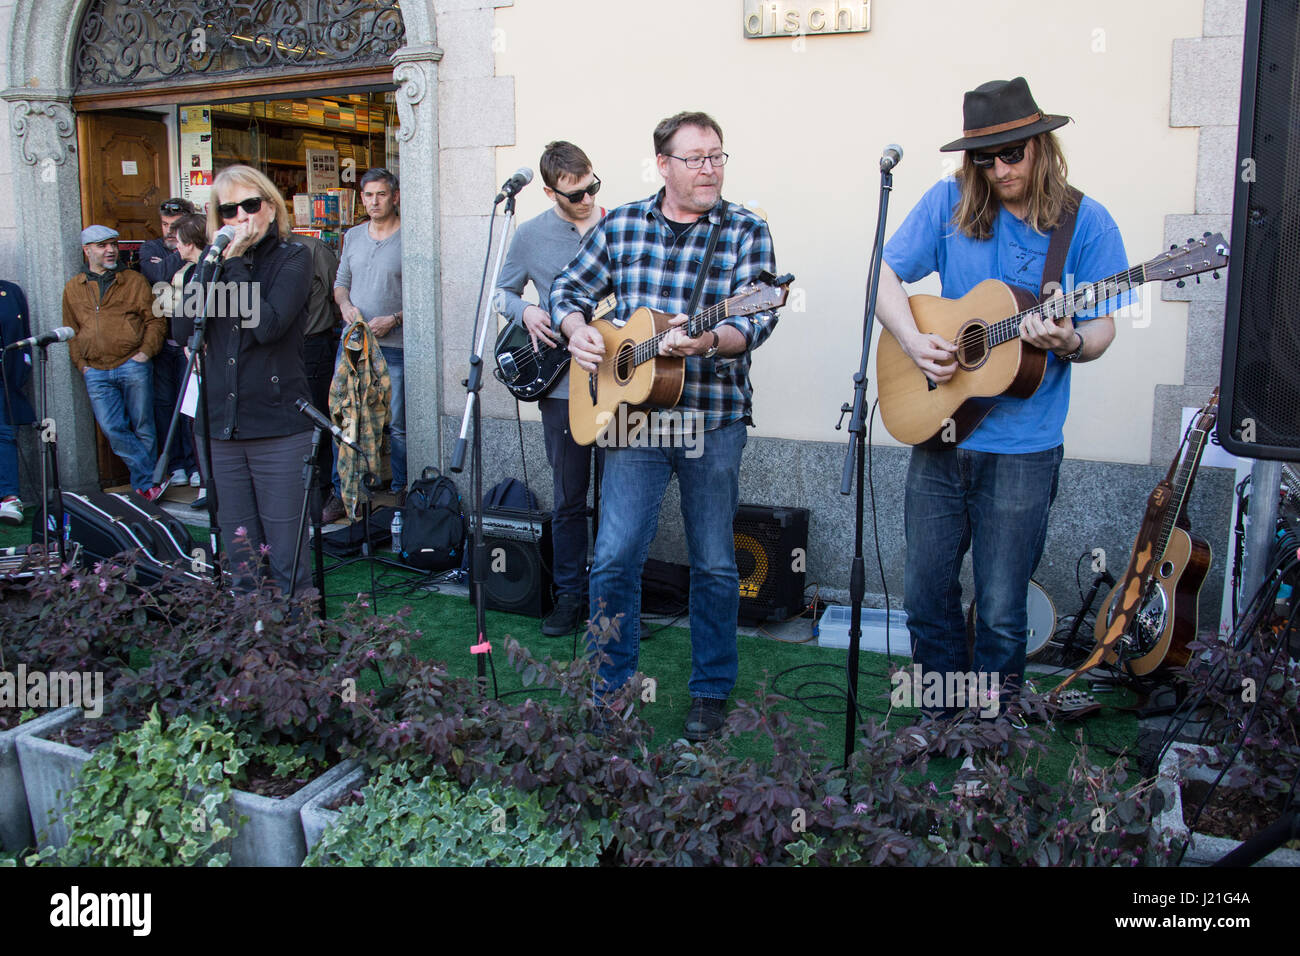 gallarate italy 22th april 2017 the american tim grimm family band performs live on stage during the record store day front of caru dischi most famous